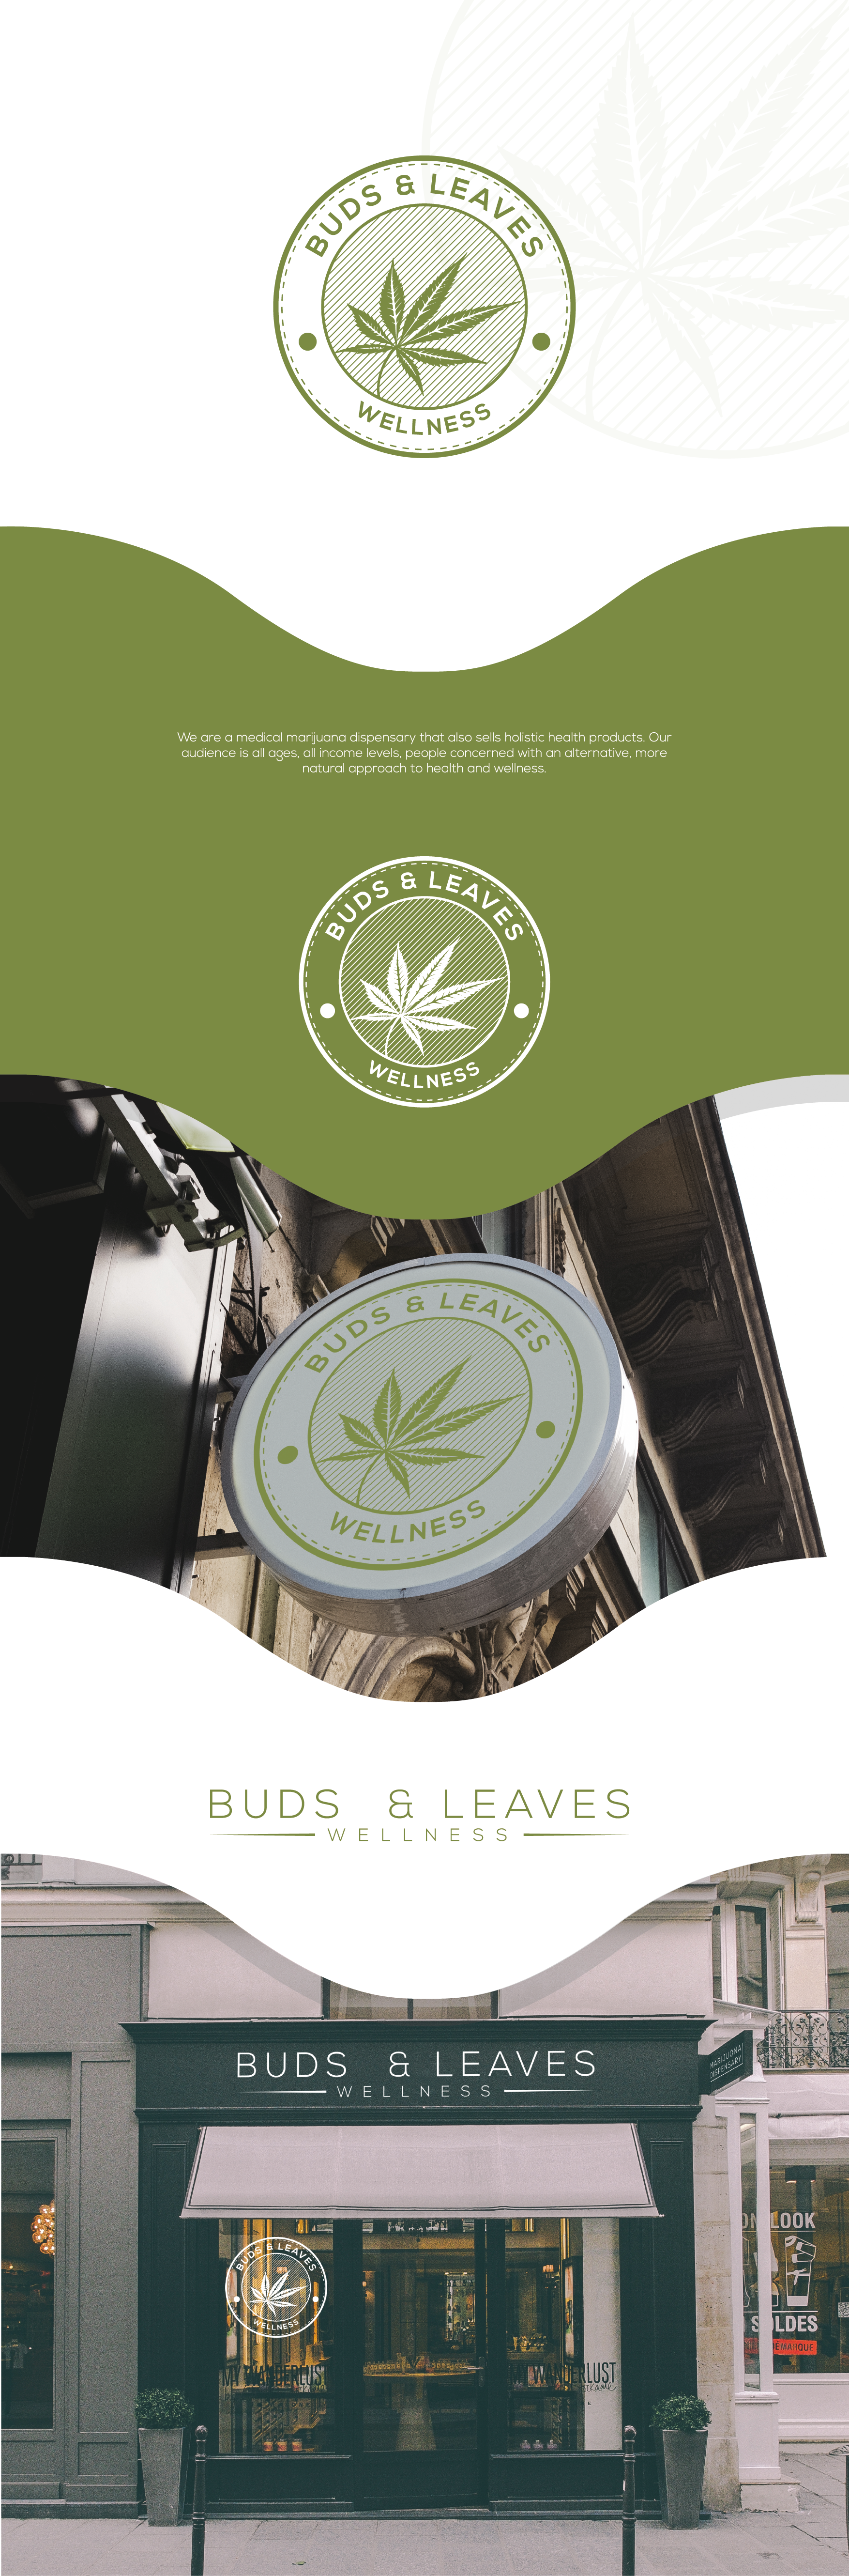 Buds & Leaves - our dispensary needs an awesome new logo!